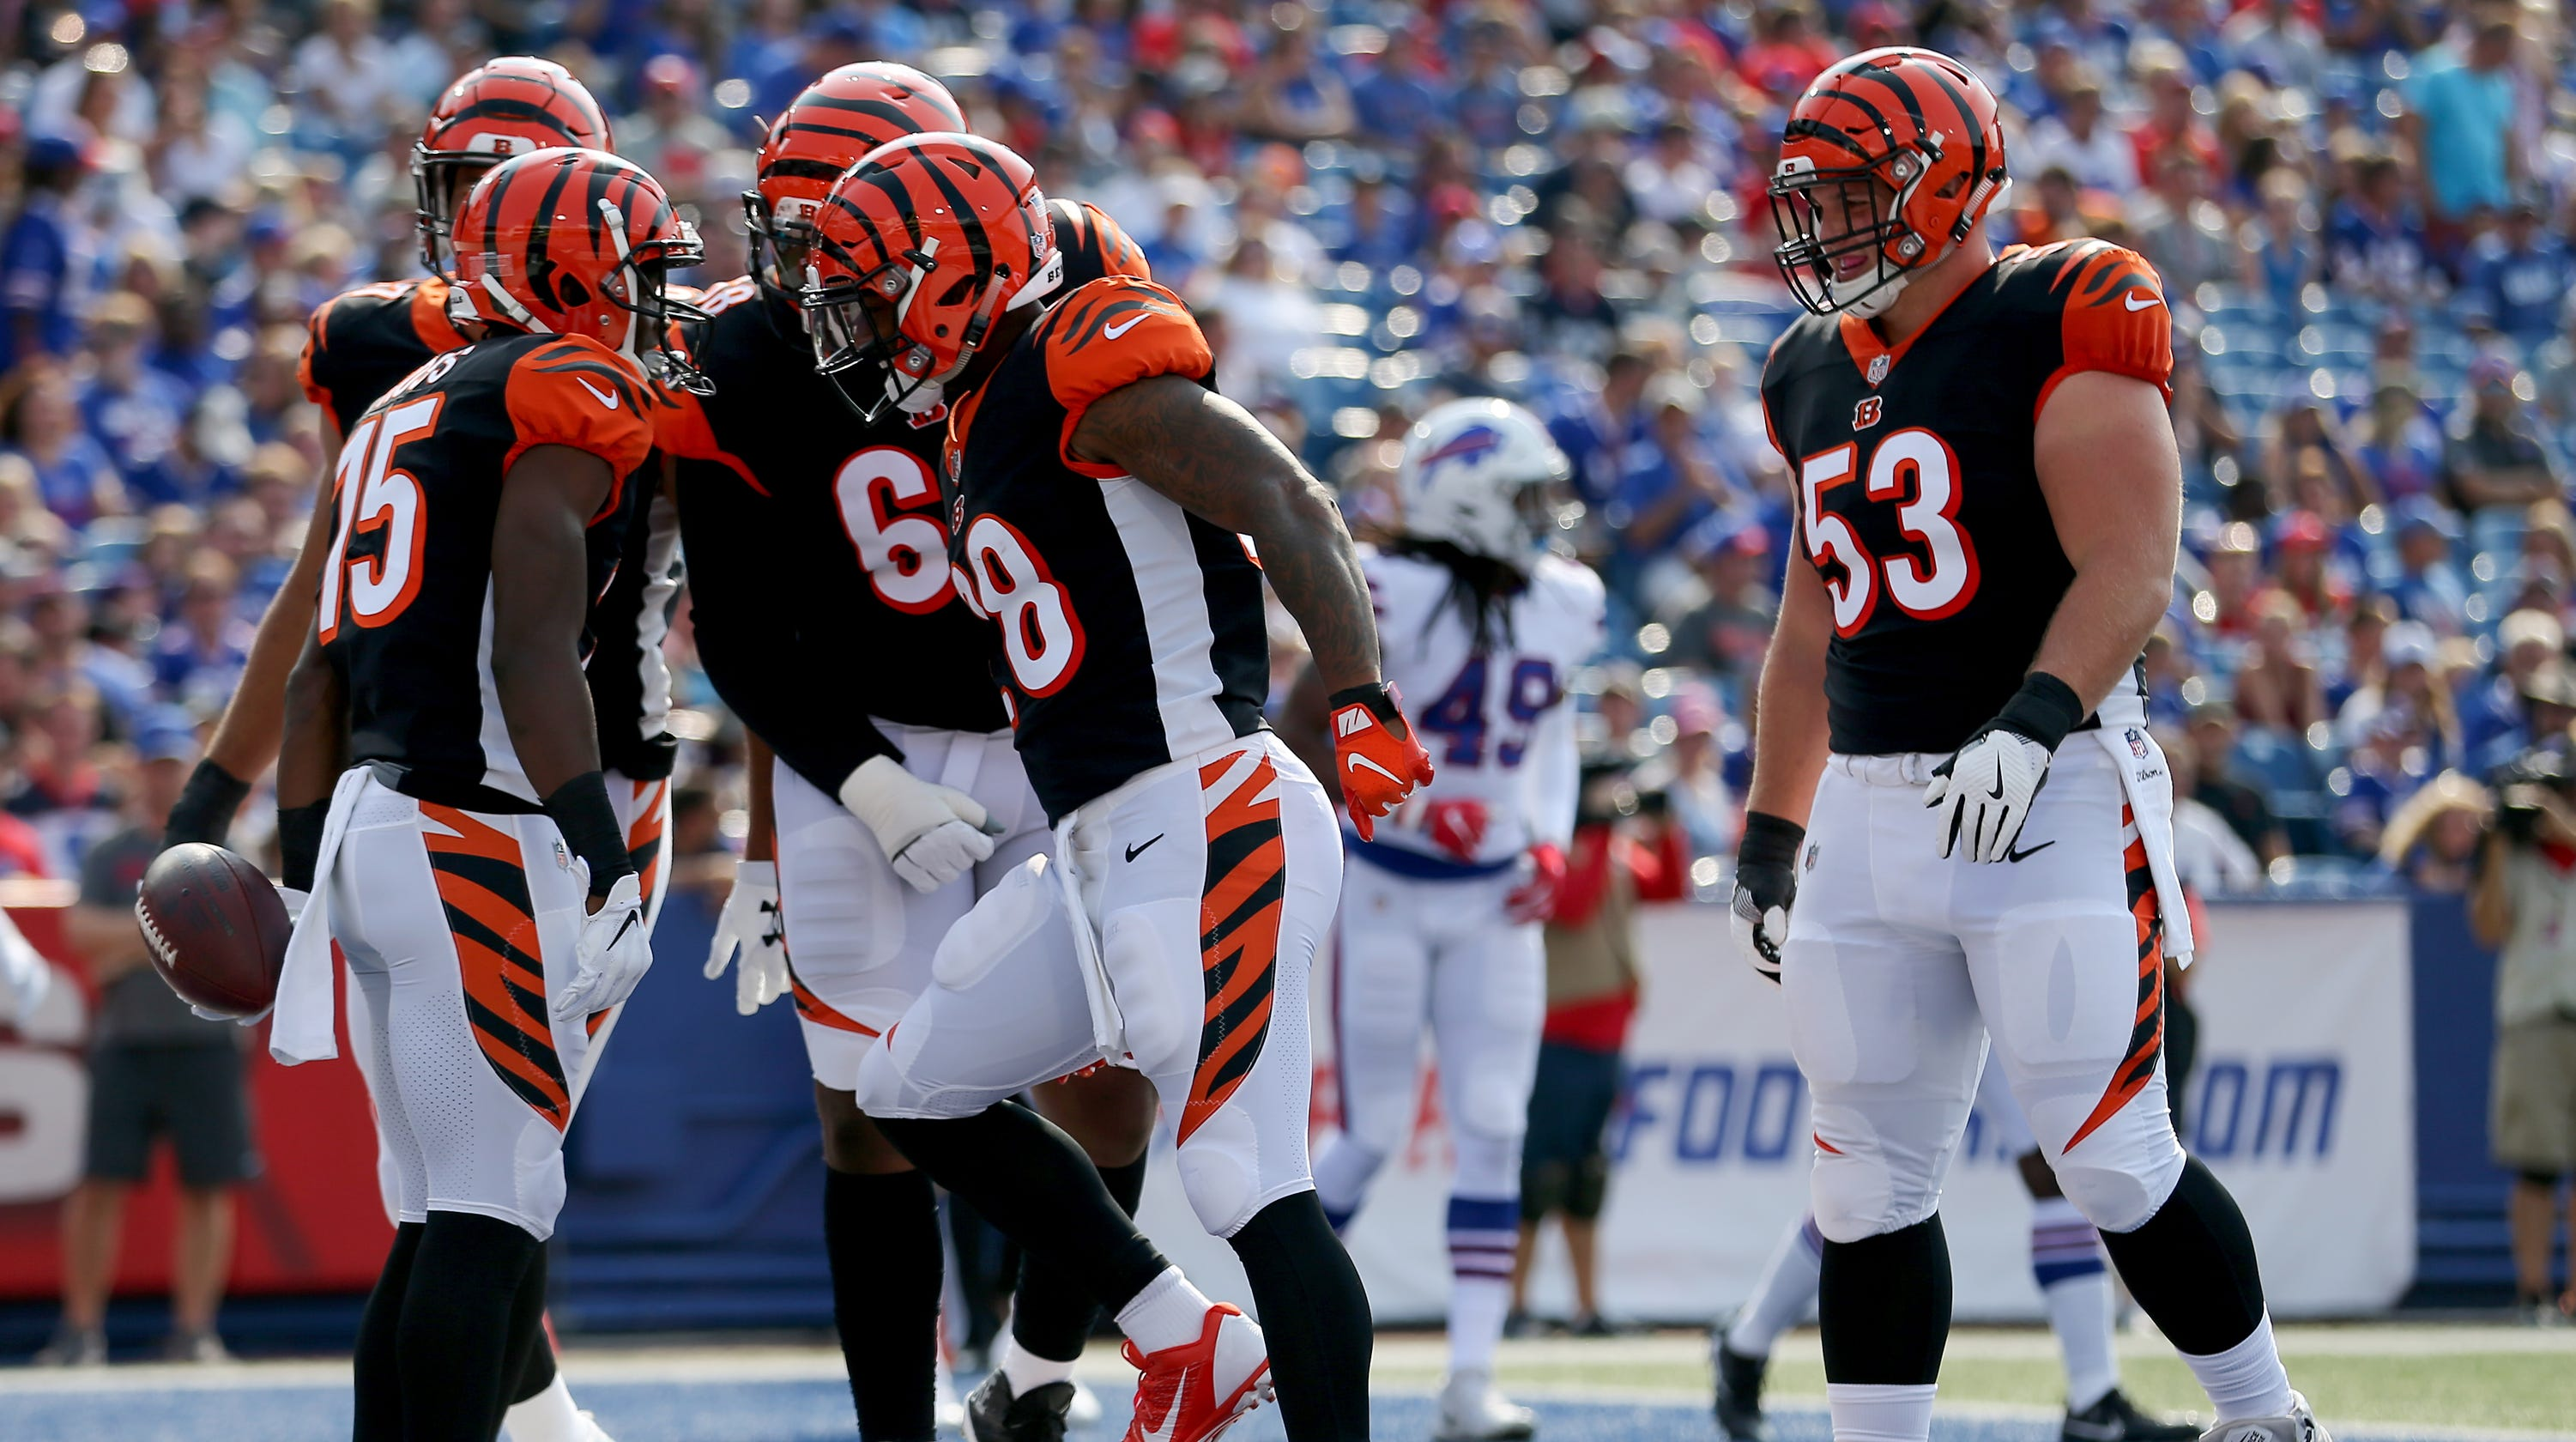 c96e79f7a7a NFL Week 1 Cincinnati Bengals  Young players shining in stripes